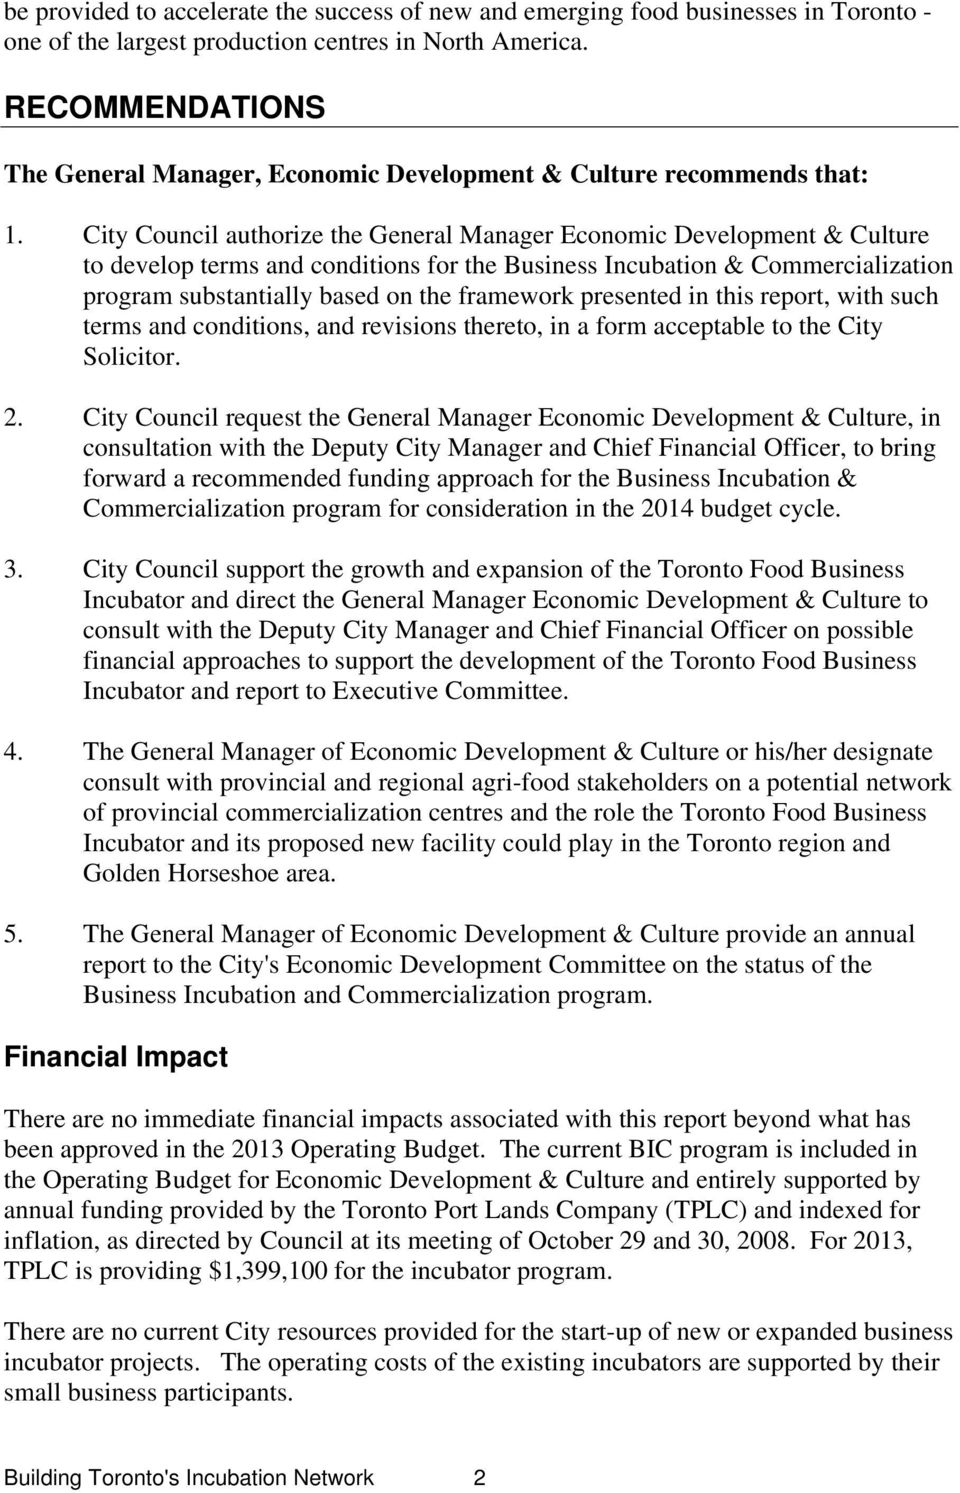 City Council authorize the General Manager Economic Development & Culture to develop terms and conditions for the Business Incubation & Commercialization program substantially based on the framework